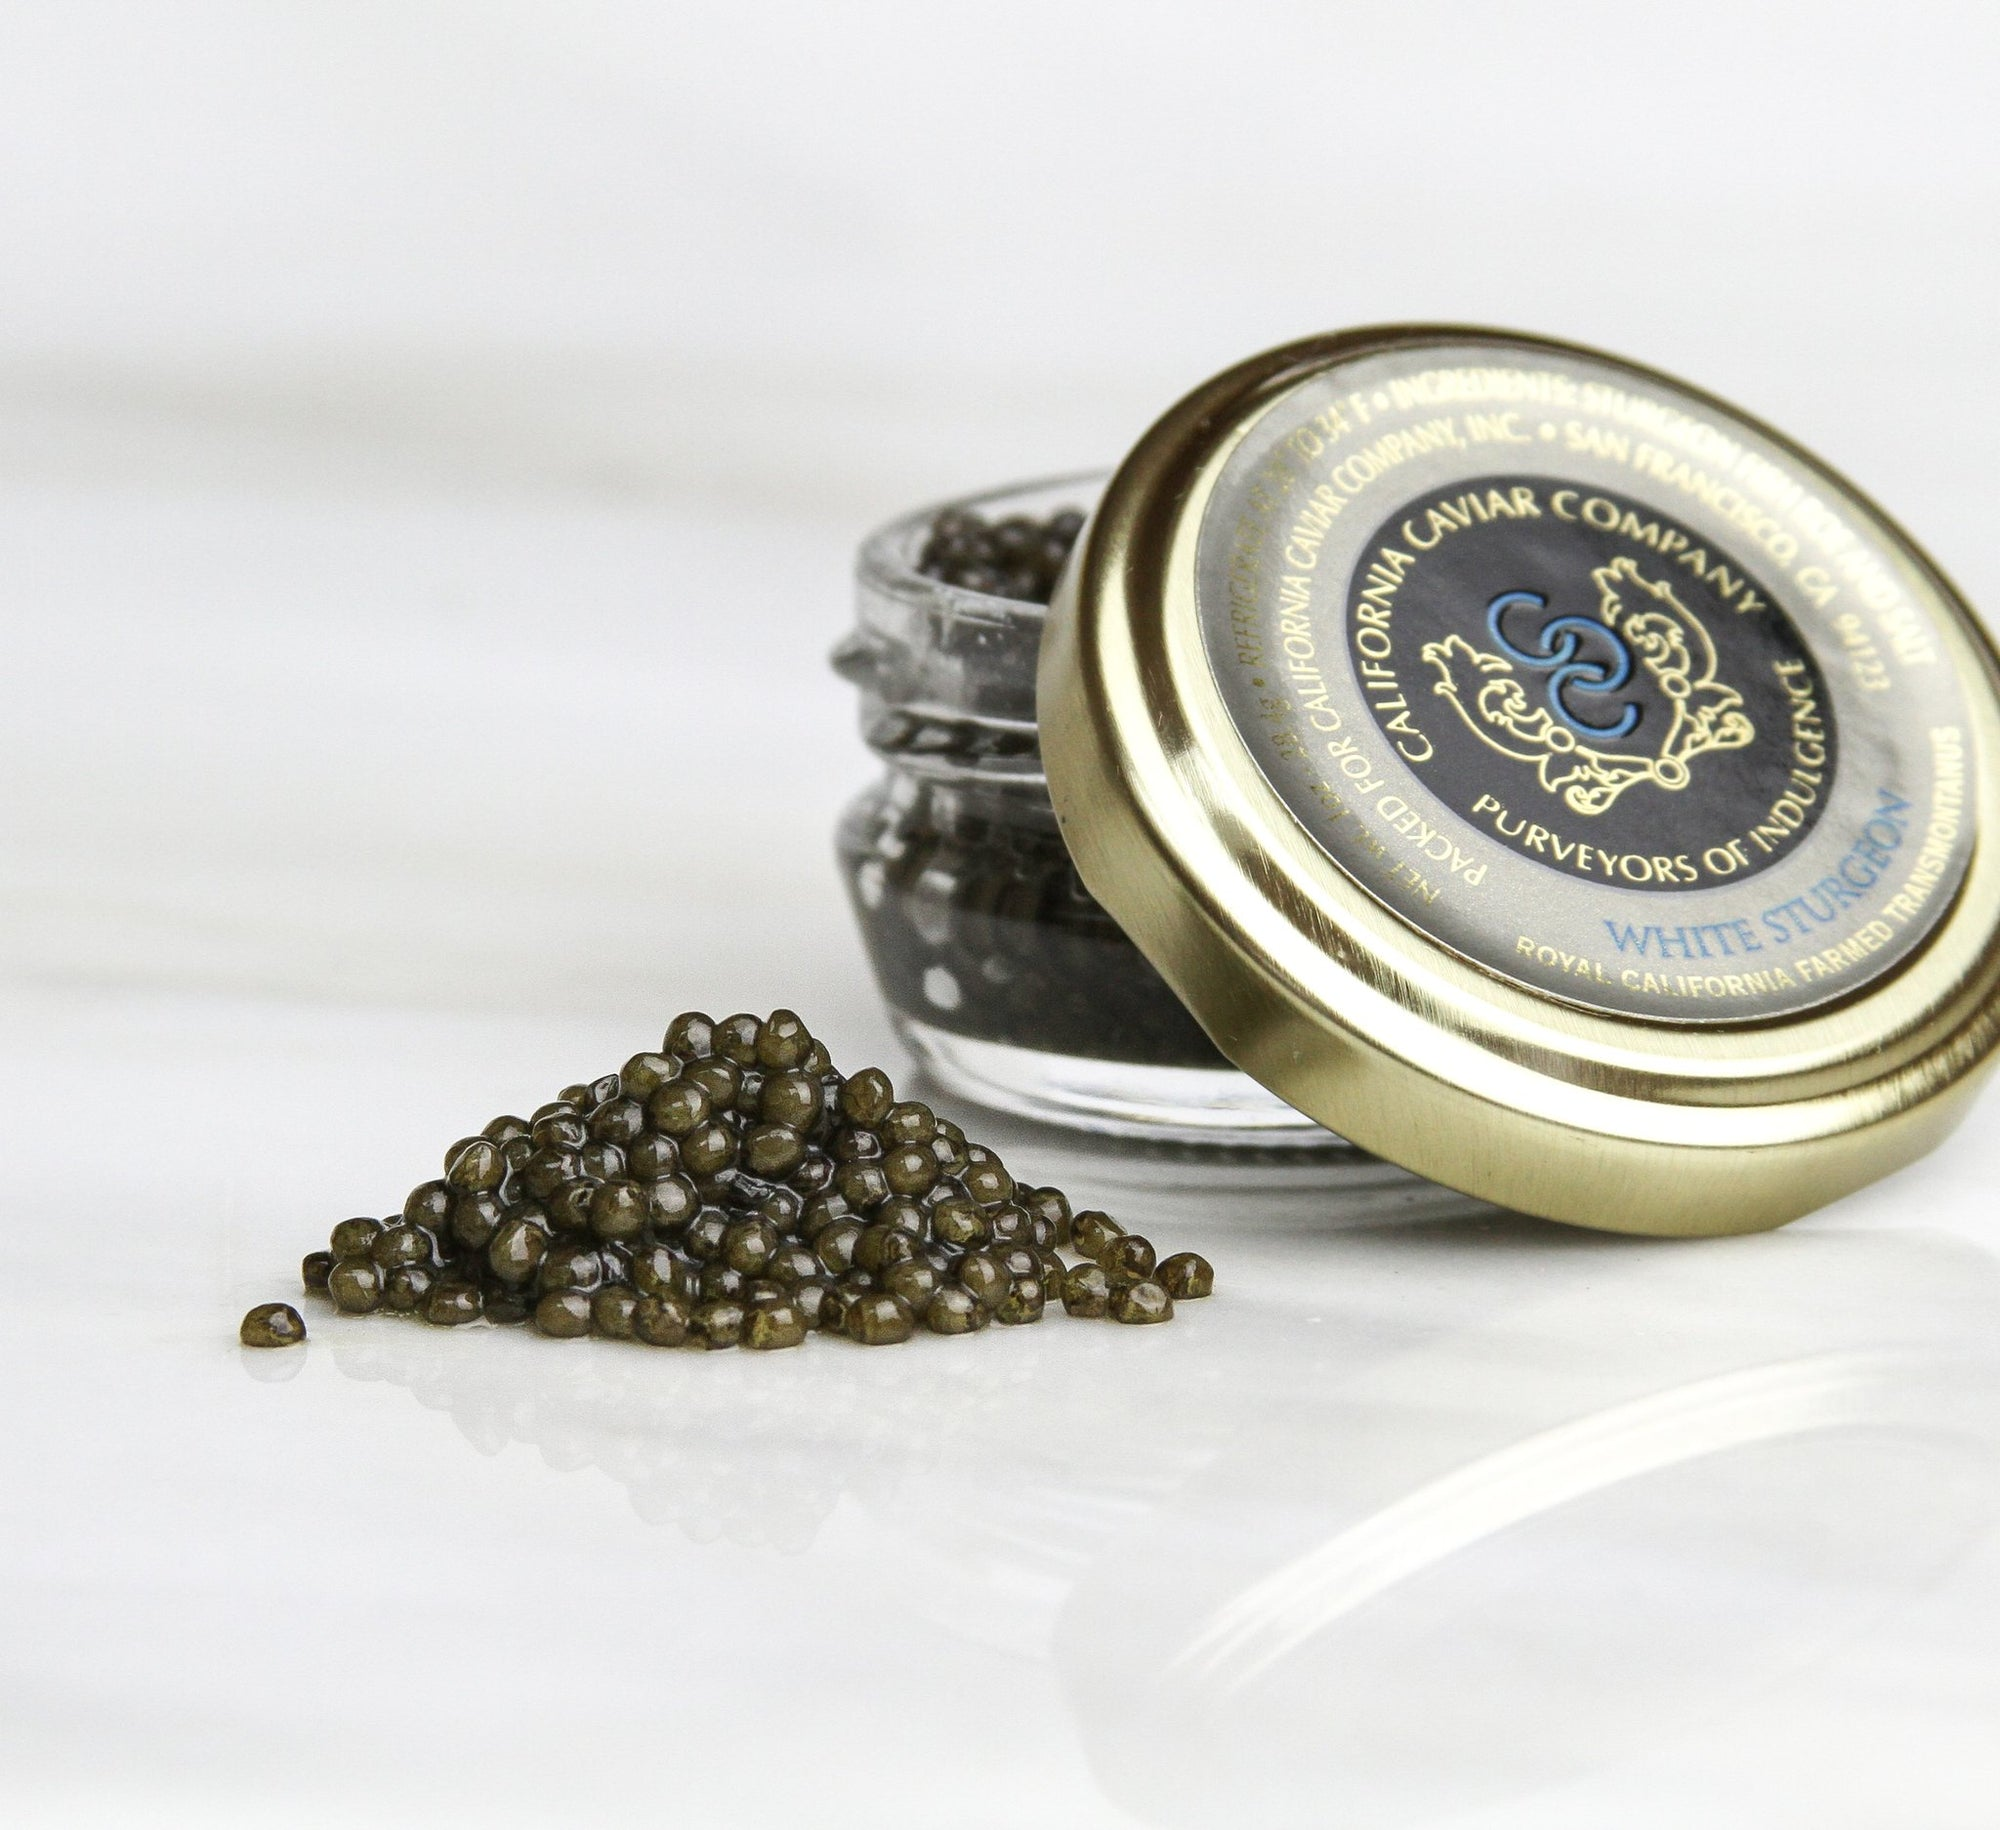 California Caviar Company Royal White California Sturgeon Caviar (1oz)